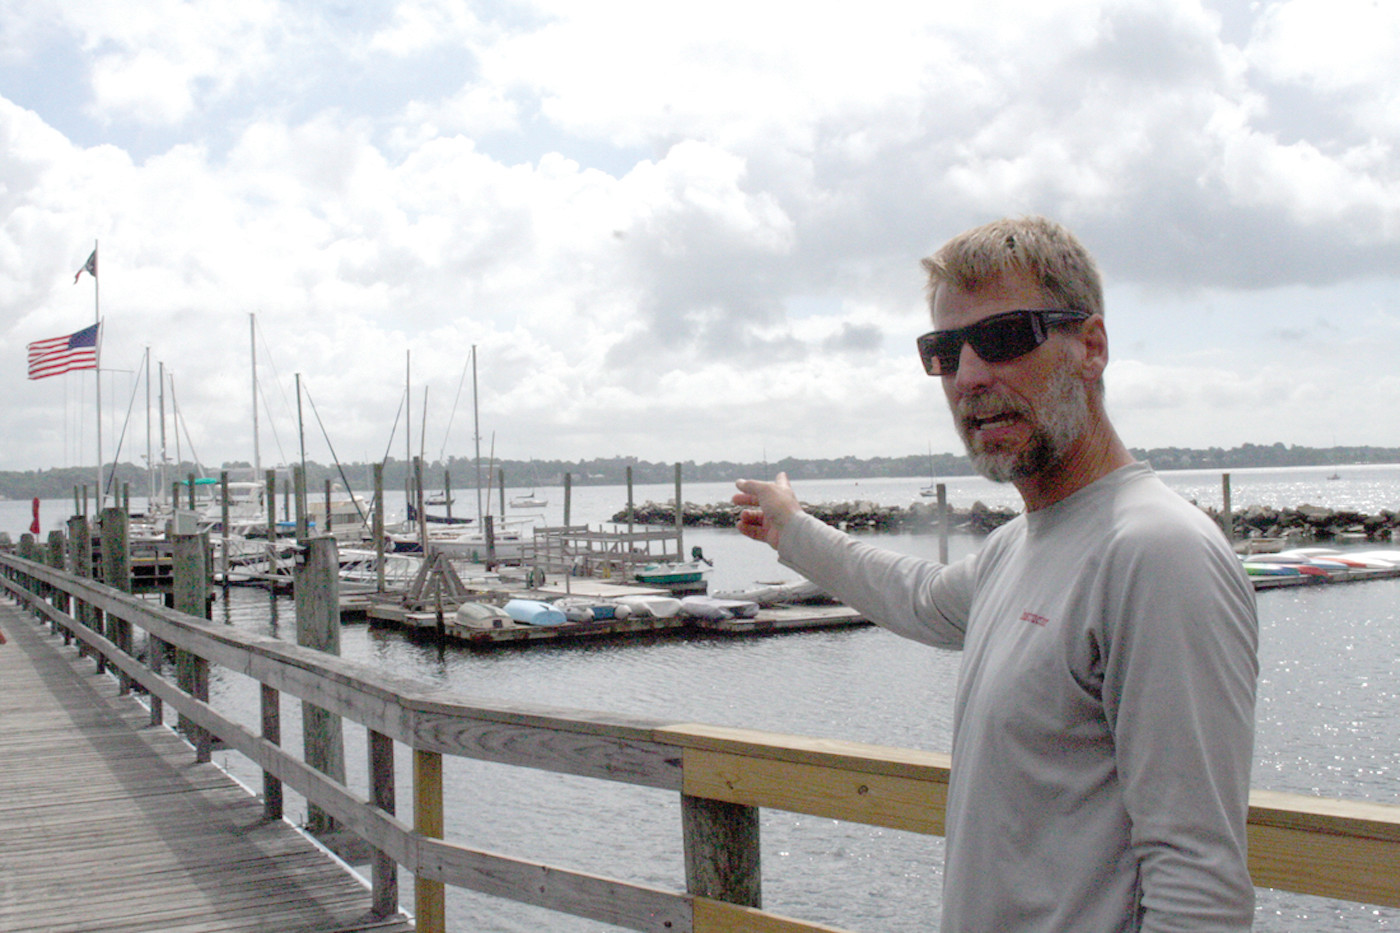 HIS DOMAIN: Chris Krane, who has run the Edgewood Yacht Club youth sailing school for the past 14 years, points to the dock where they keep most of their boats.